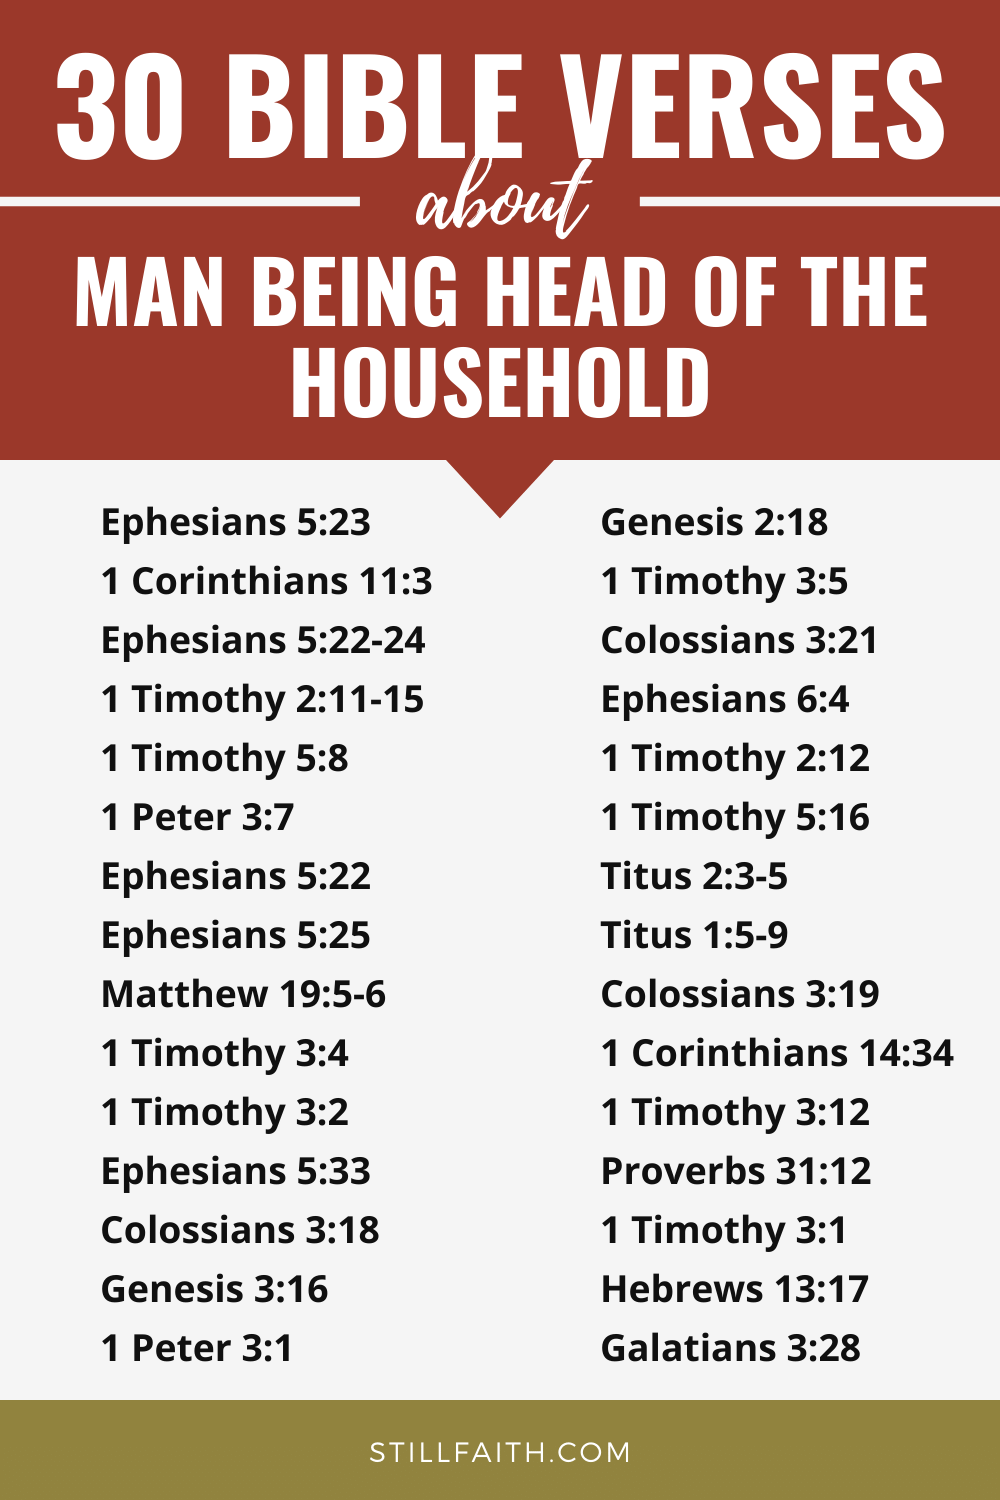 159 Bible Verses about Man Being Head of the Household